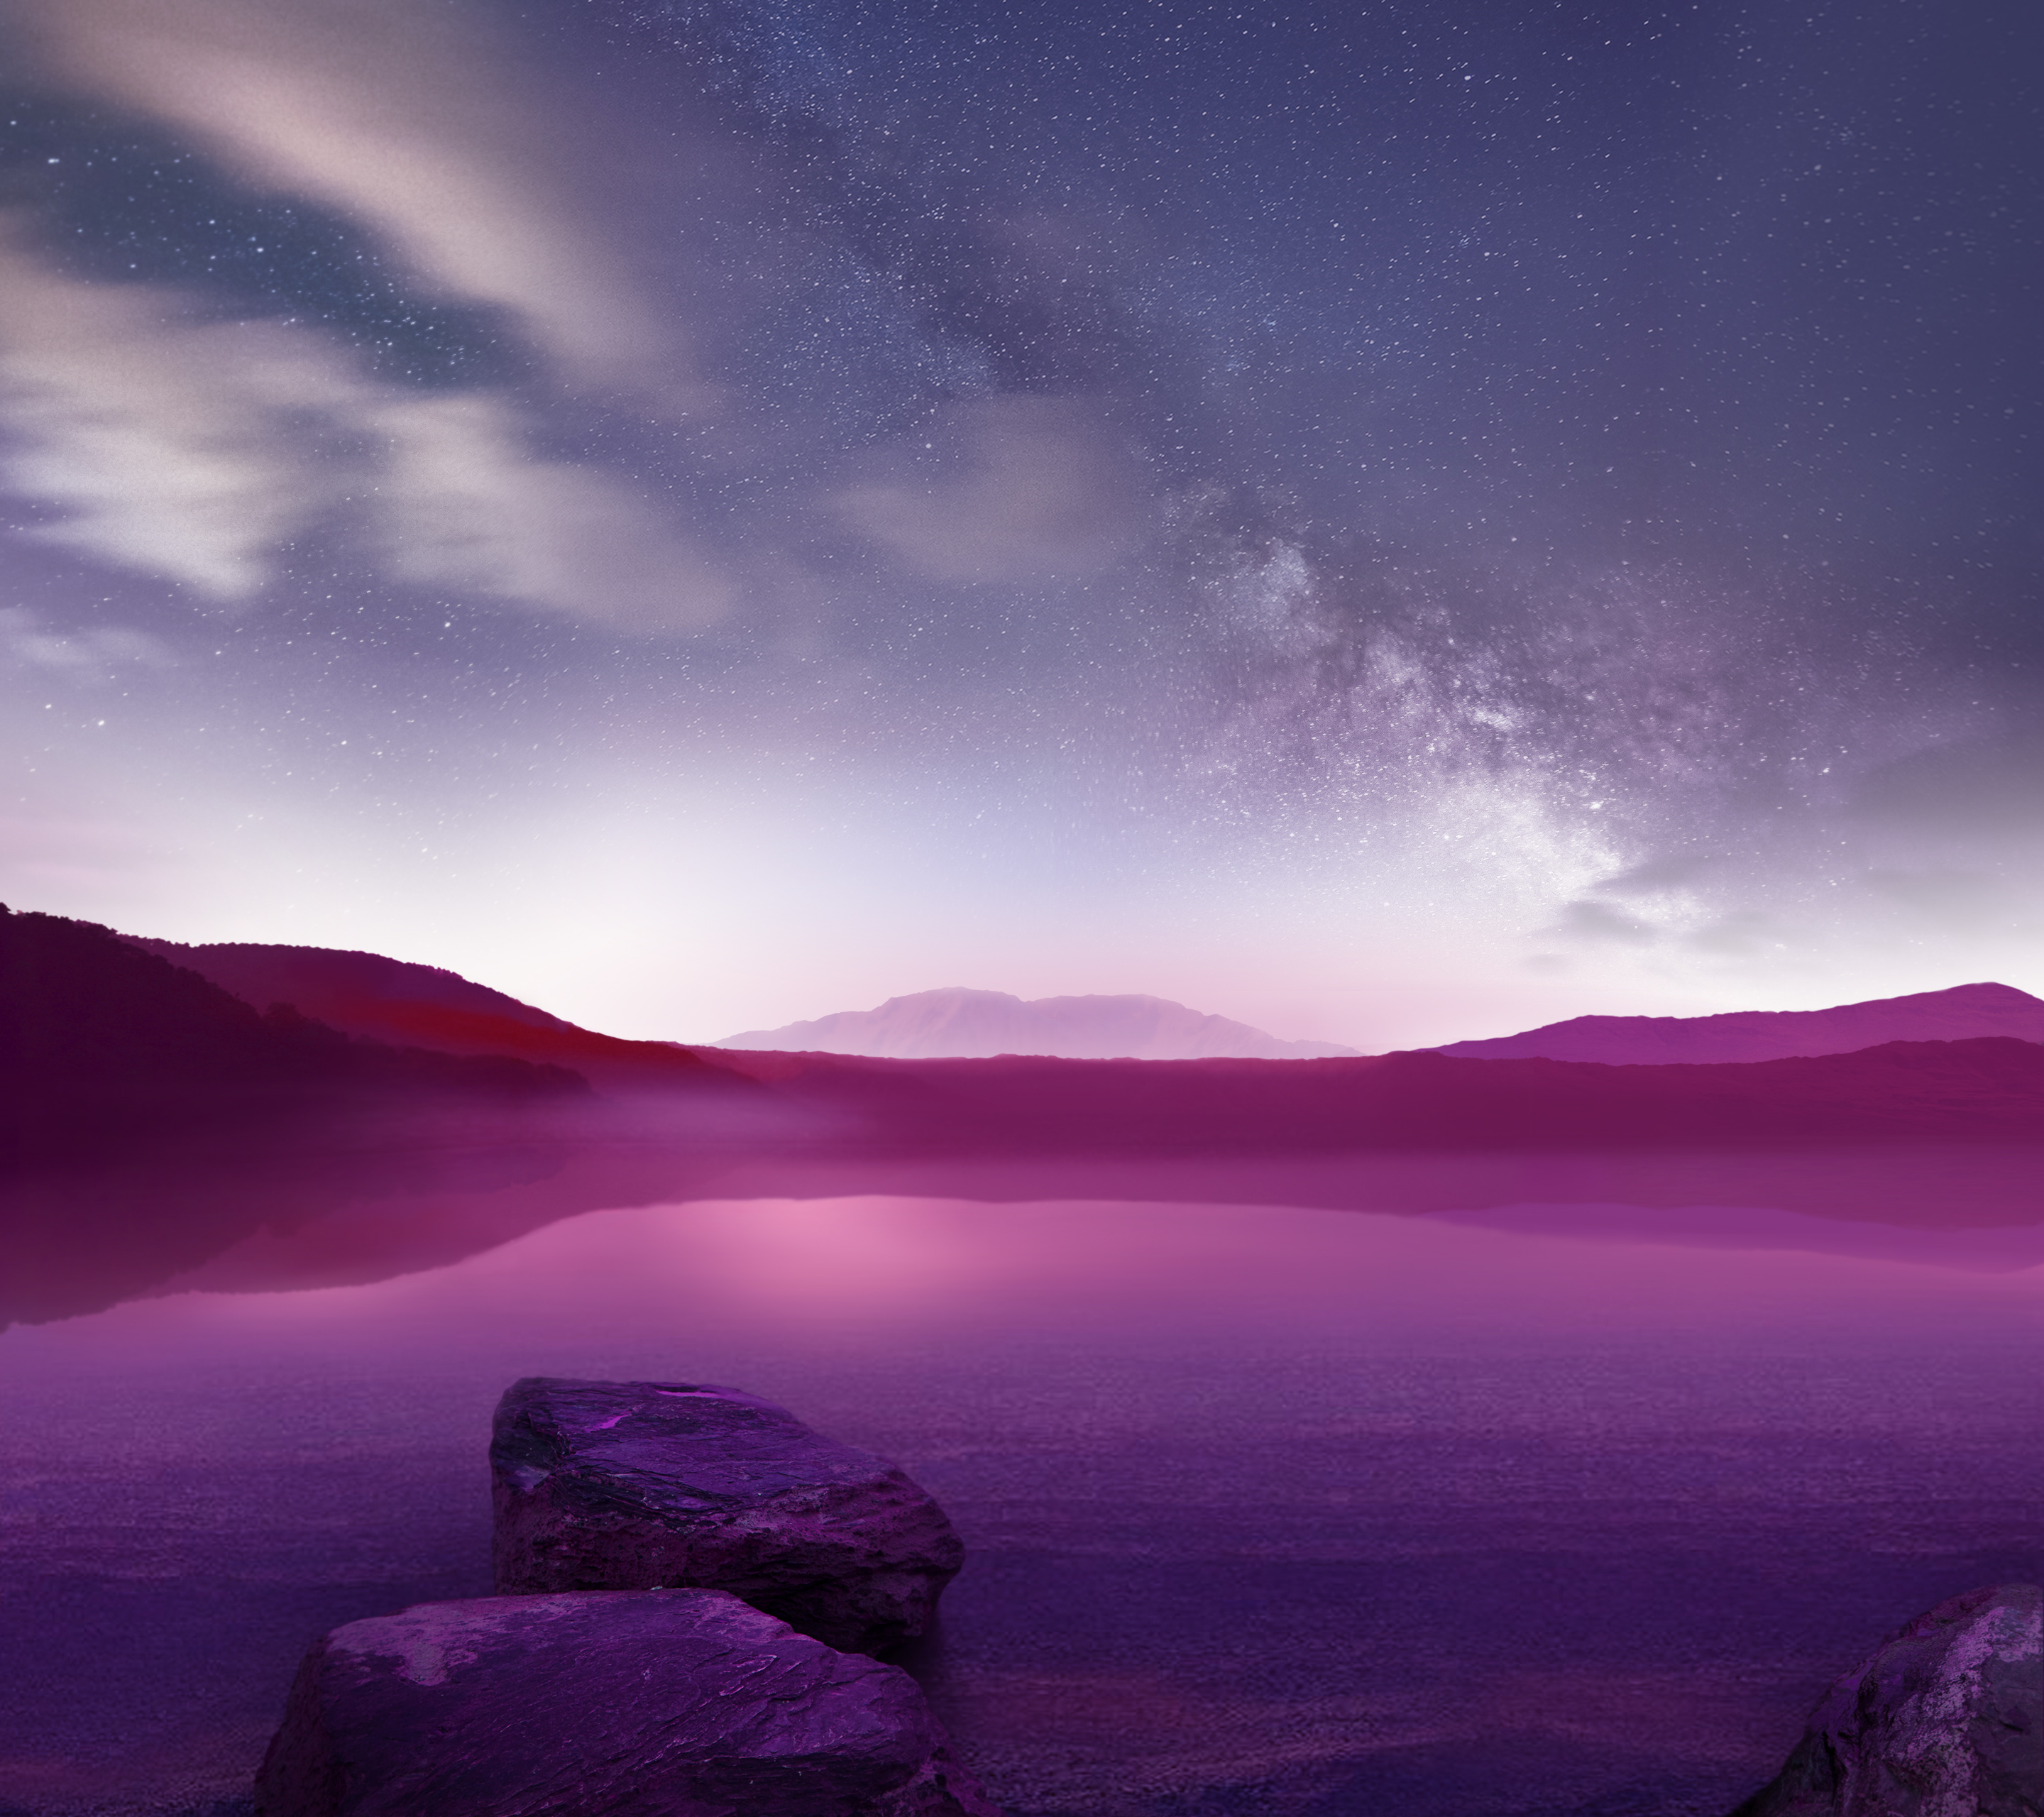 lg g3 stock wallpapers gallery